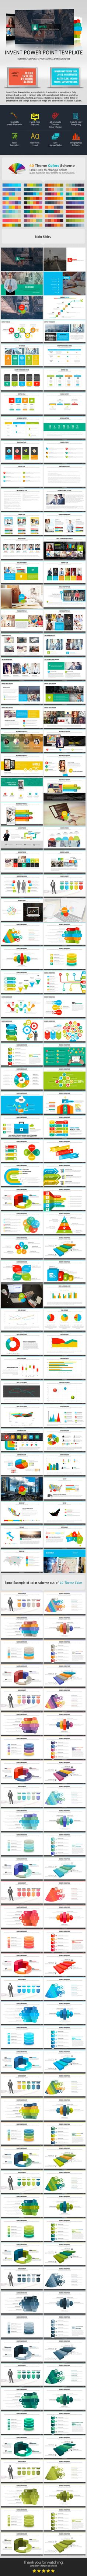 Invent Business Power Point Presentation Design Tempalte #slides Download: http://graphicriver.net/item/invent-business-power-point-presentation/12933263?ref=ksioks